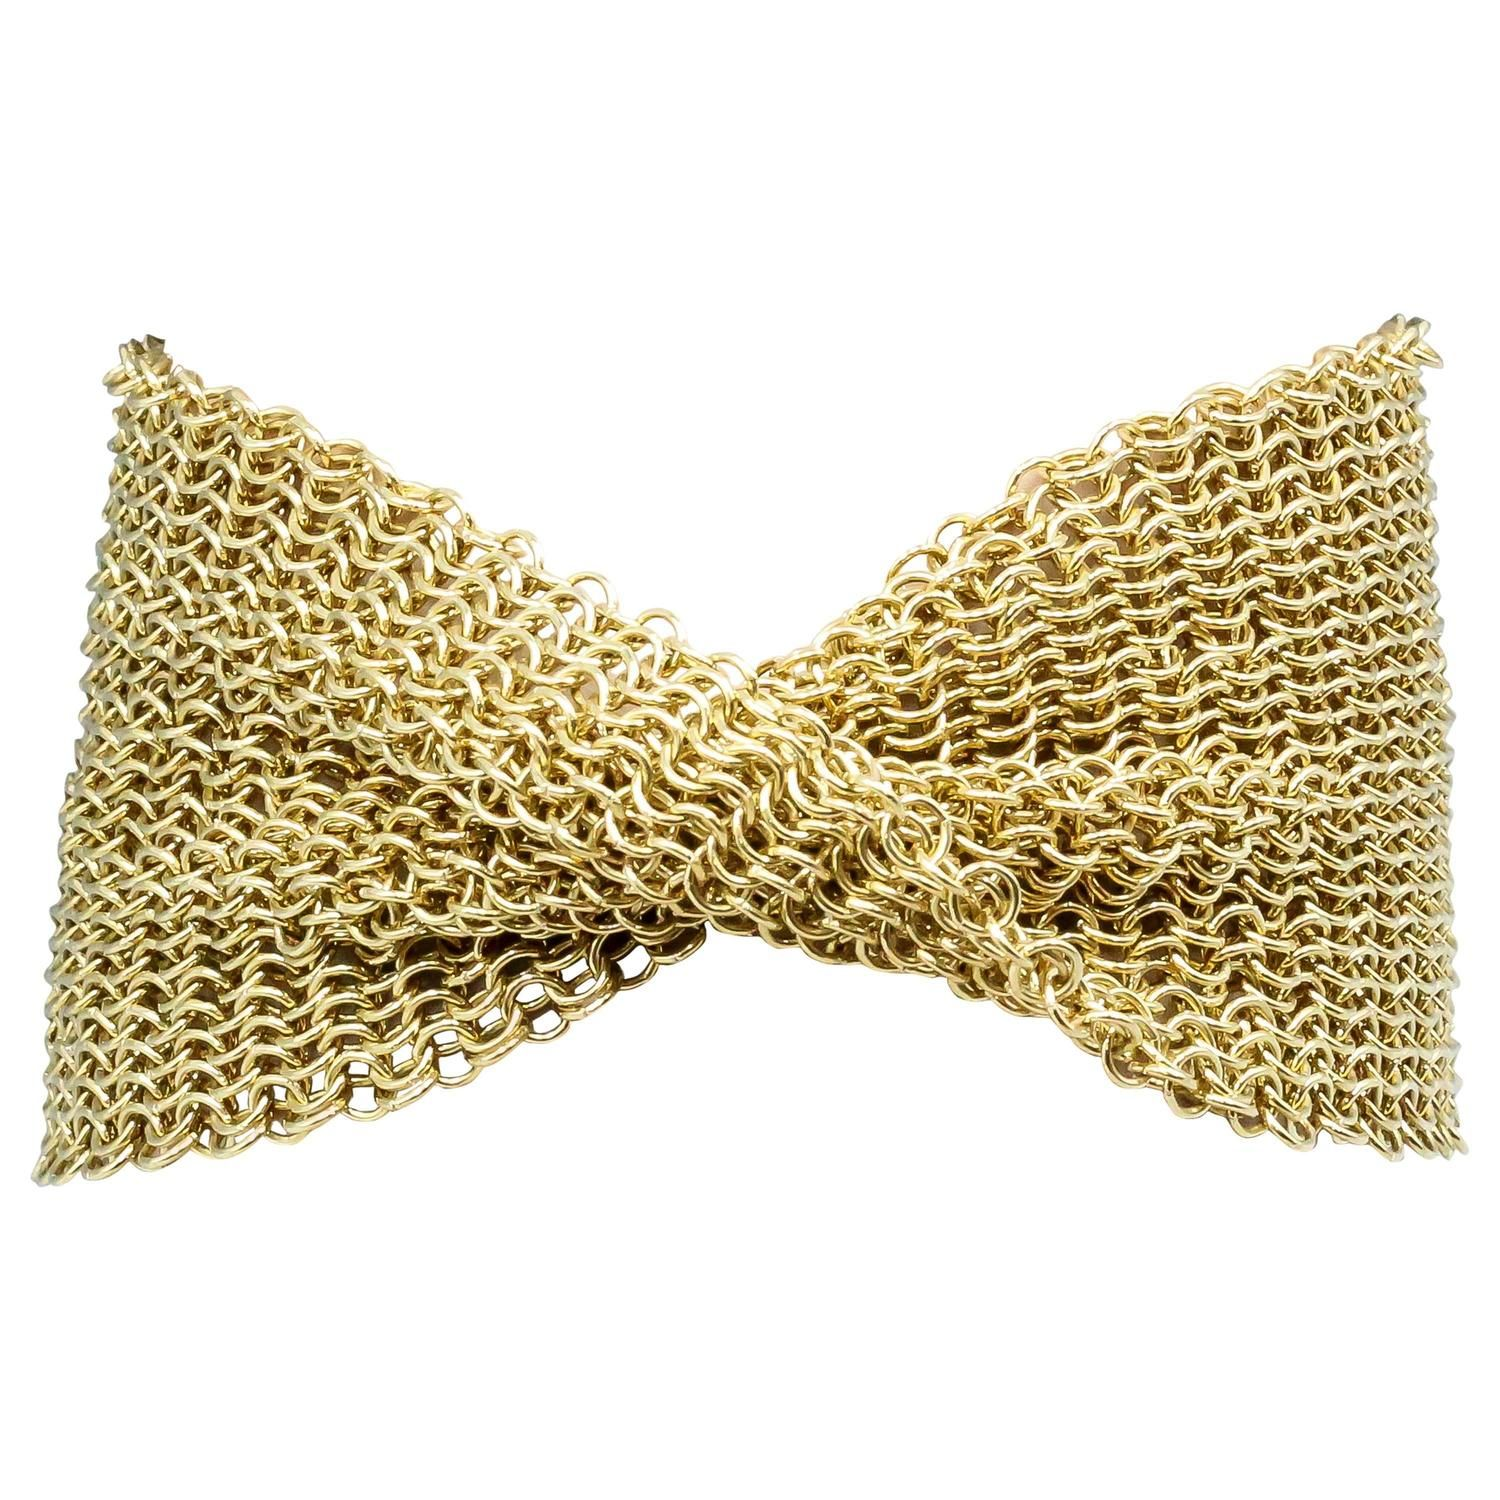 Tiffany Co Elsa Peretti Gold Mesh Bracelet From A Unique Collection Of